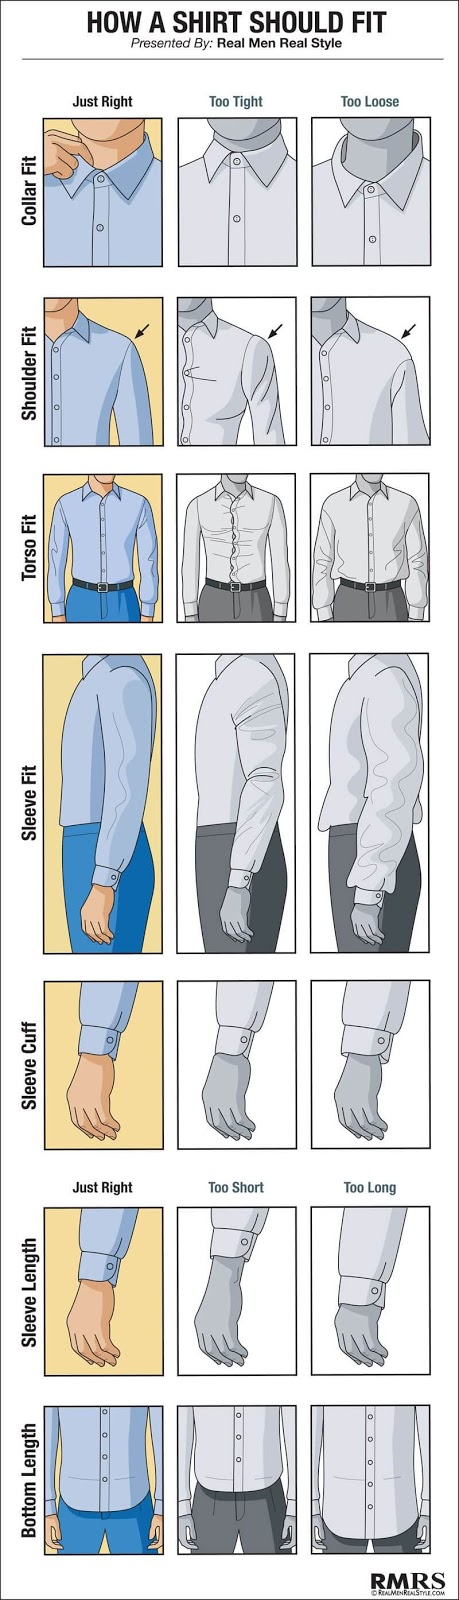 Infographic of How a Shirt should fit